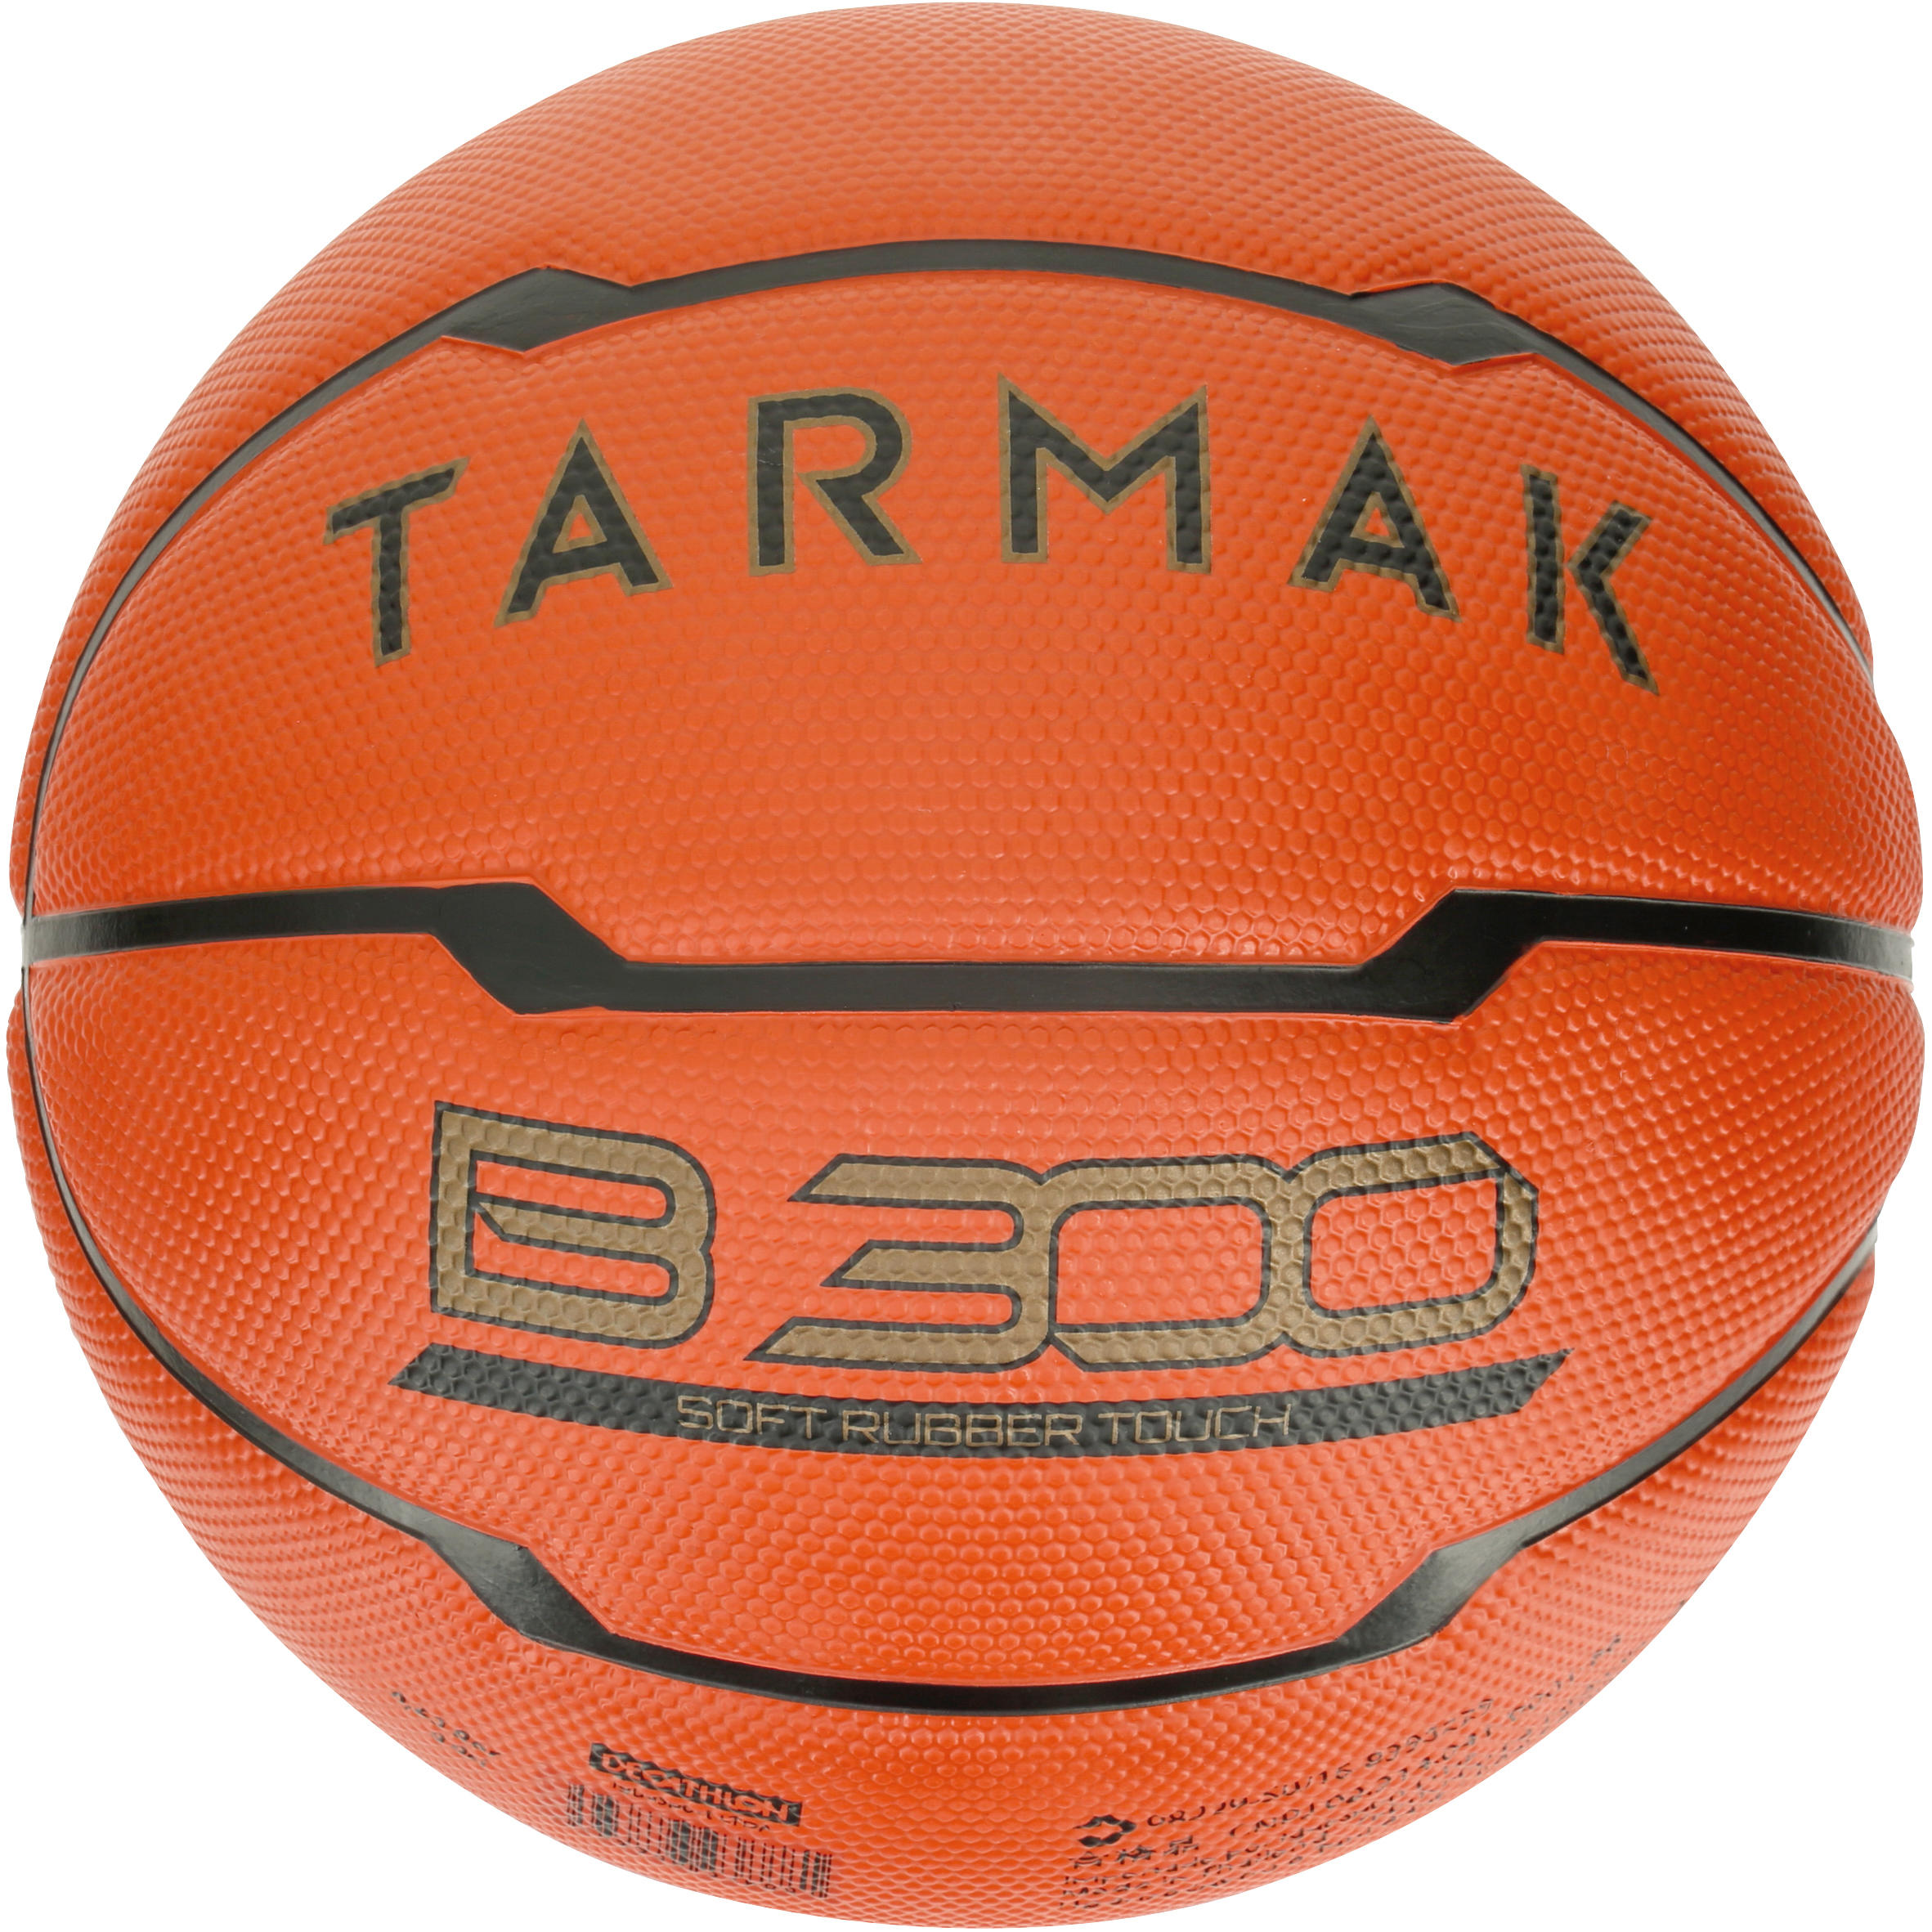 Ballon de basketball enfant B300 taille 5 orange